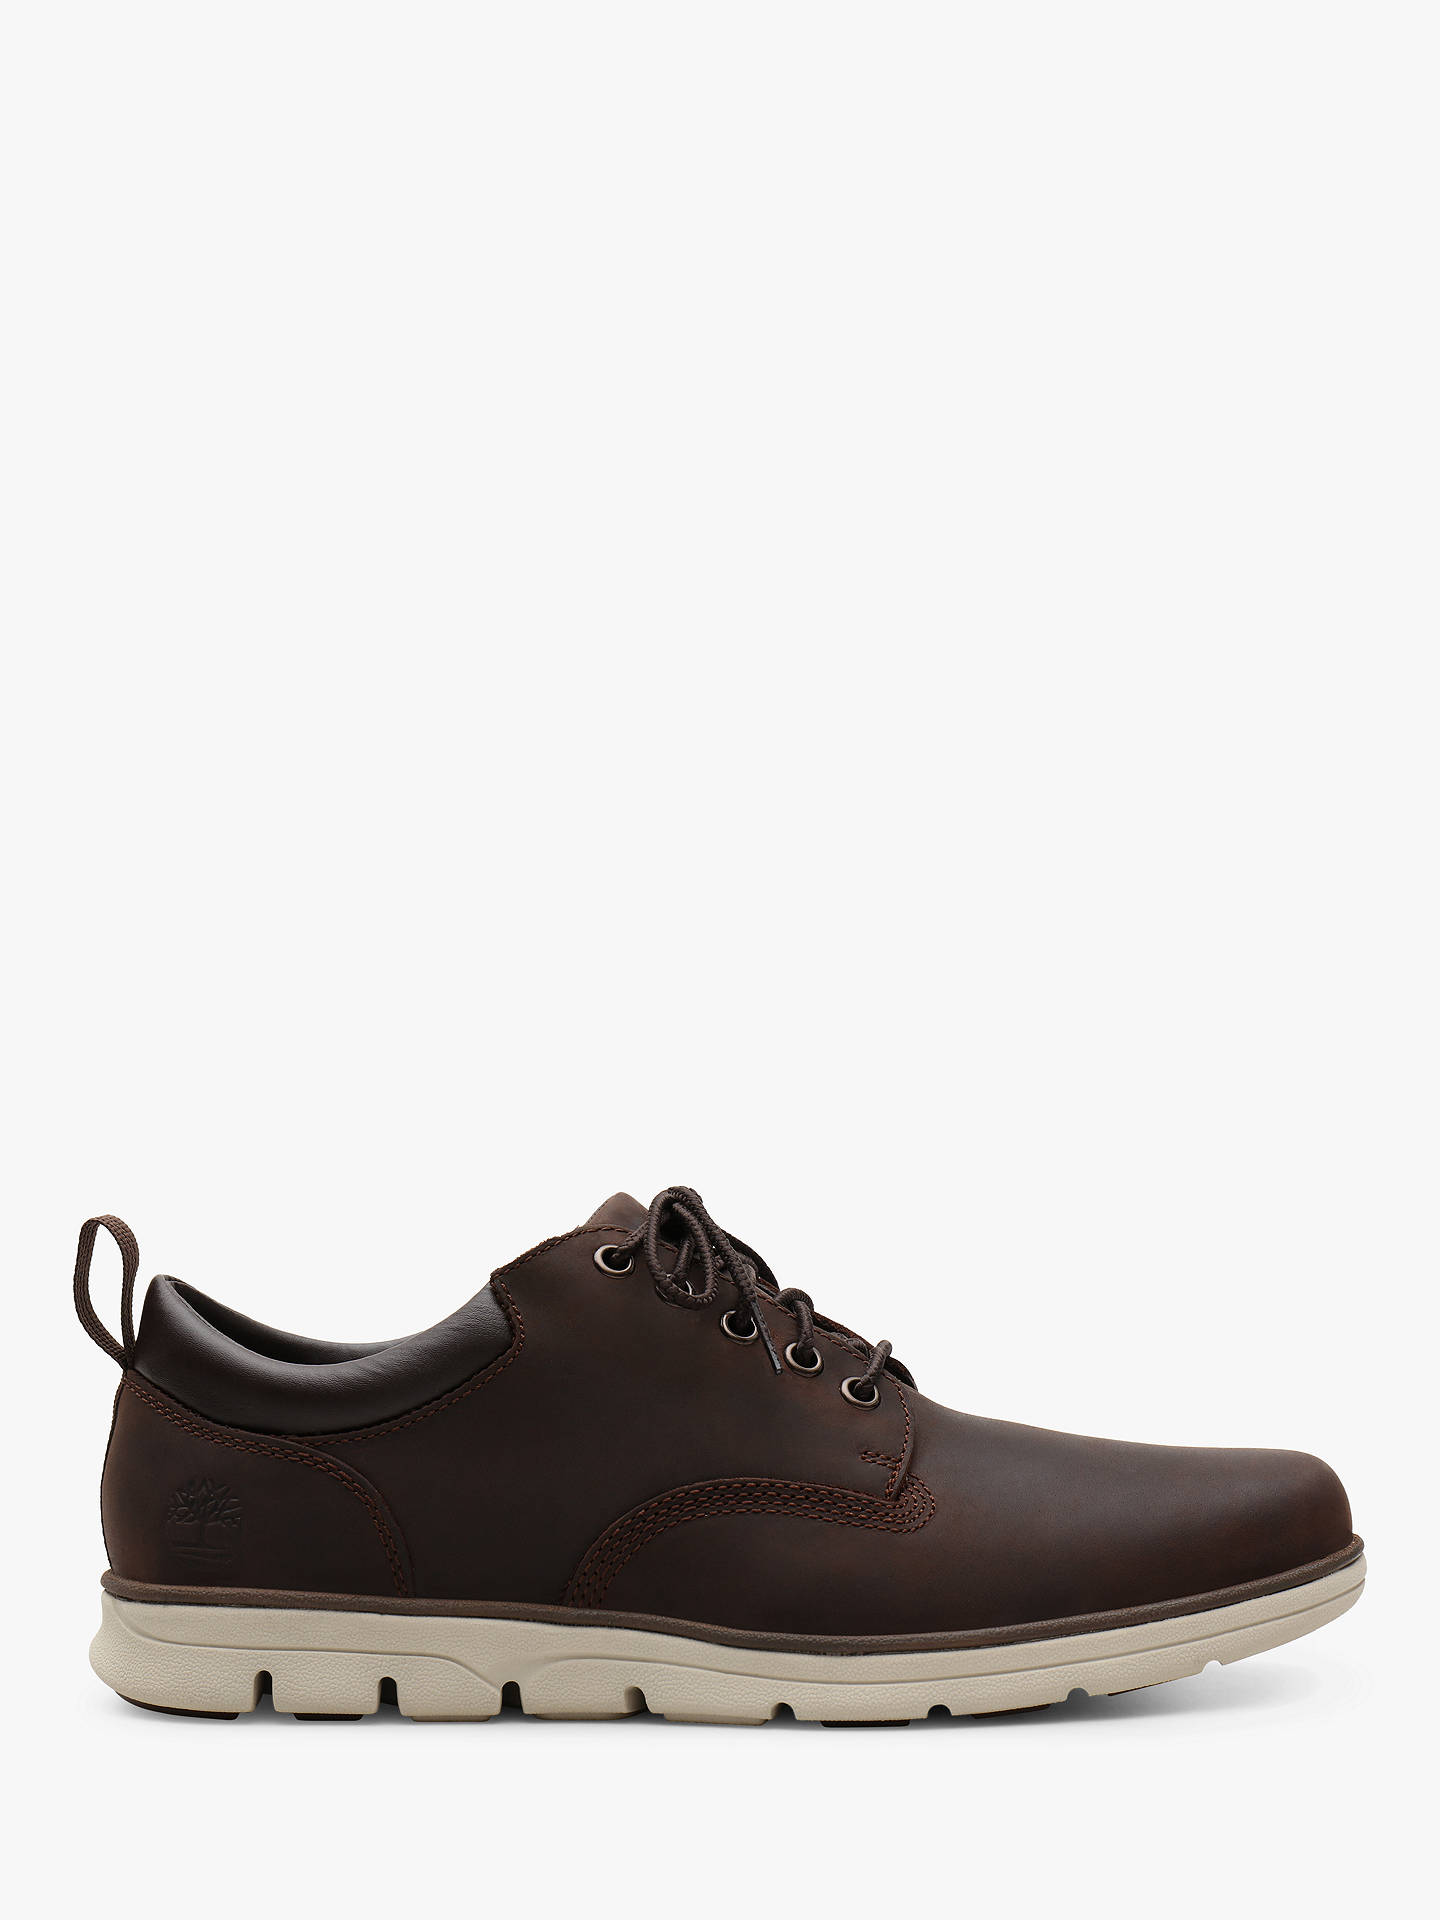 Buy Timberland Bradstreet Oxford Shoes, Brown, 8 Online at johnlewis.com